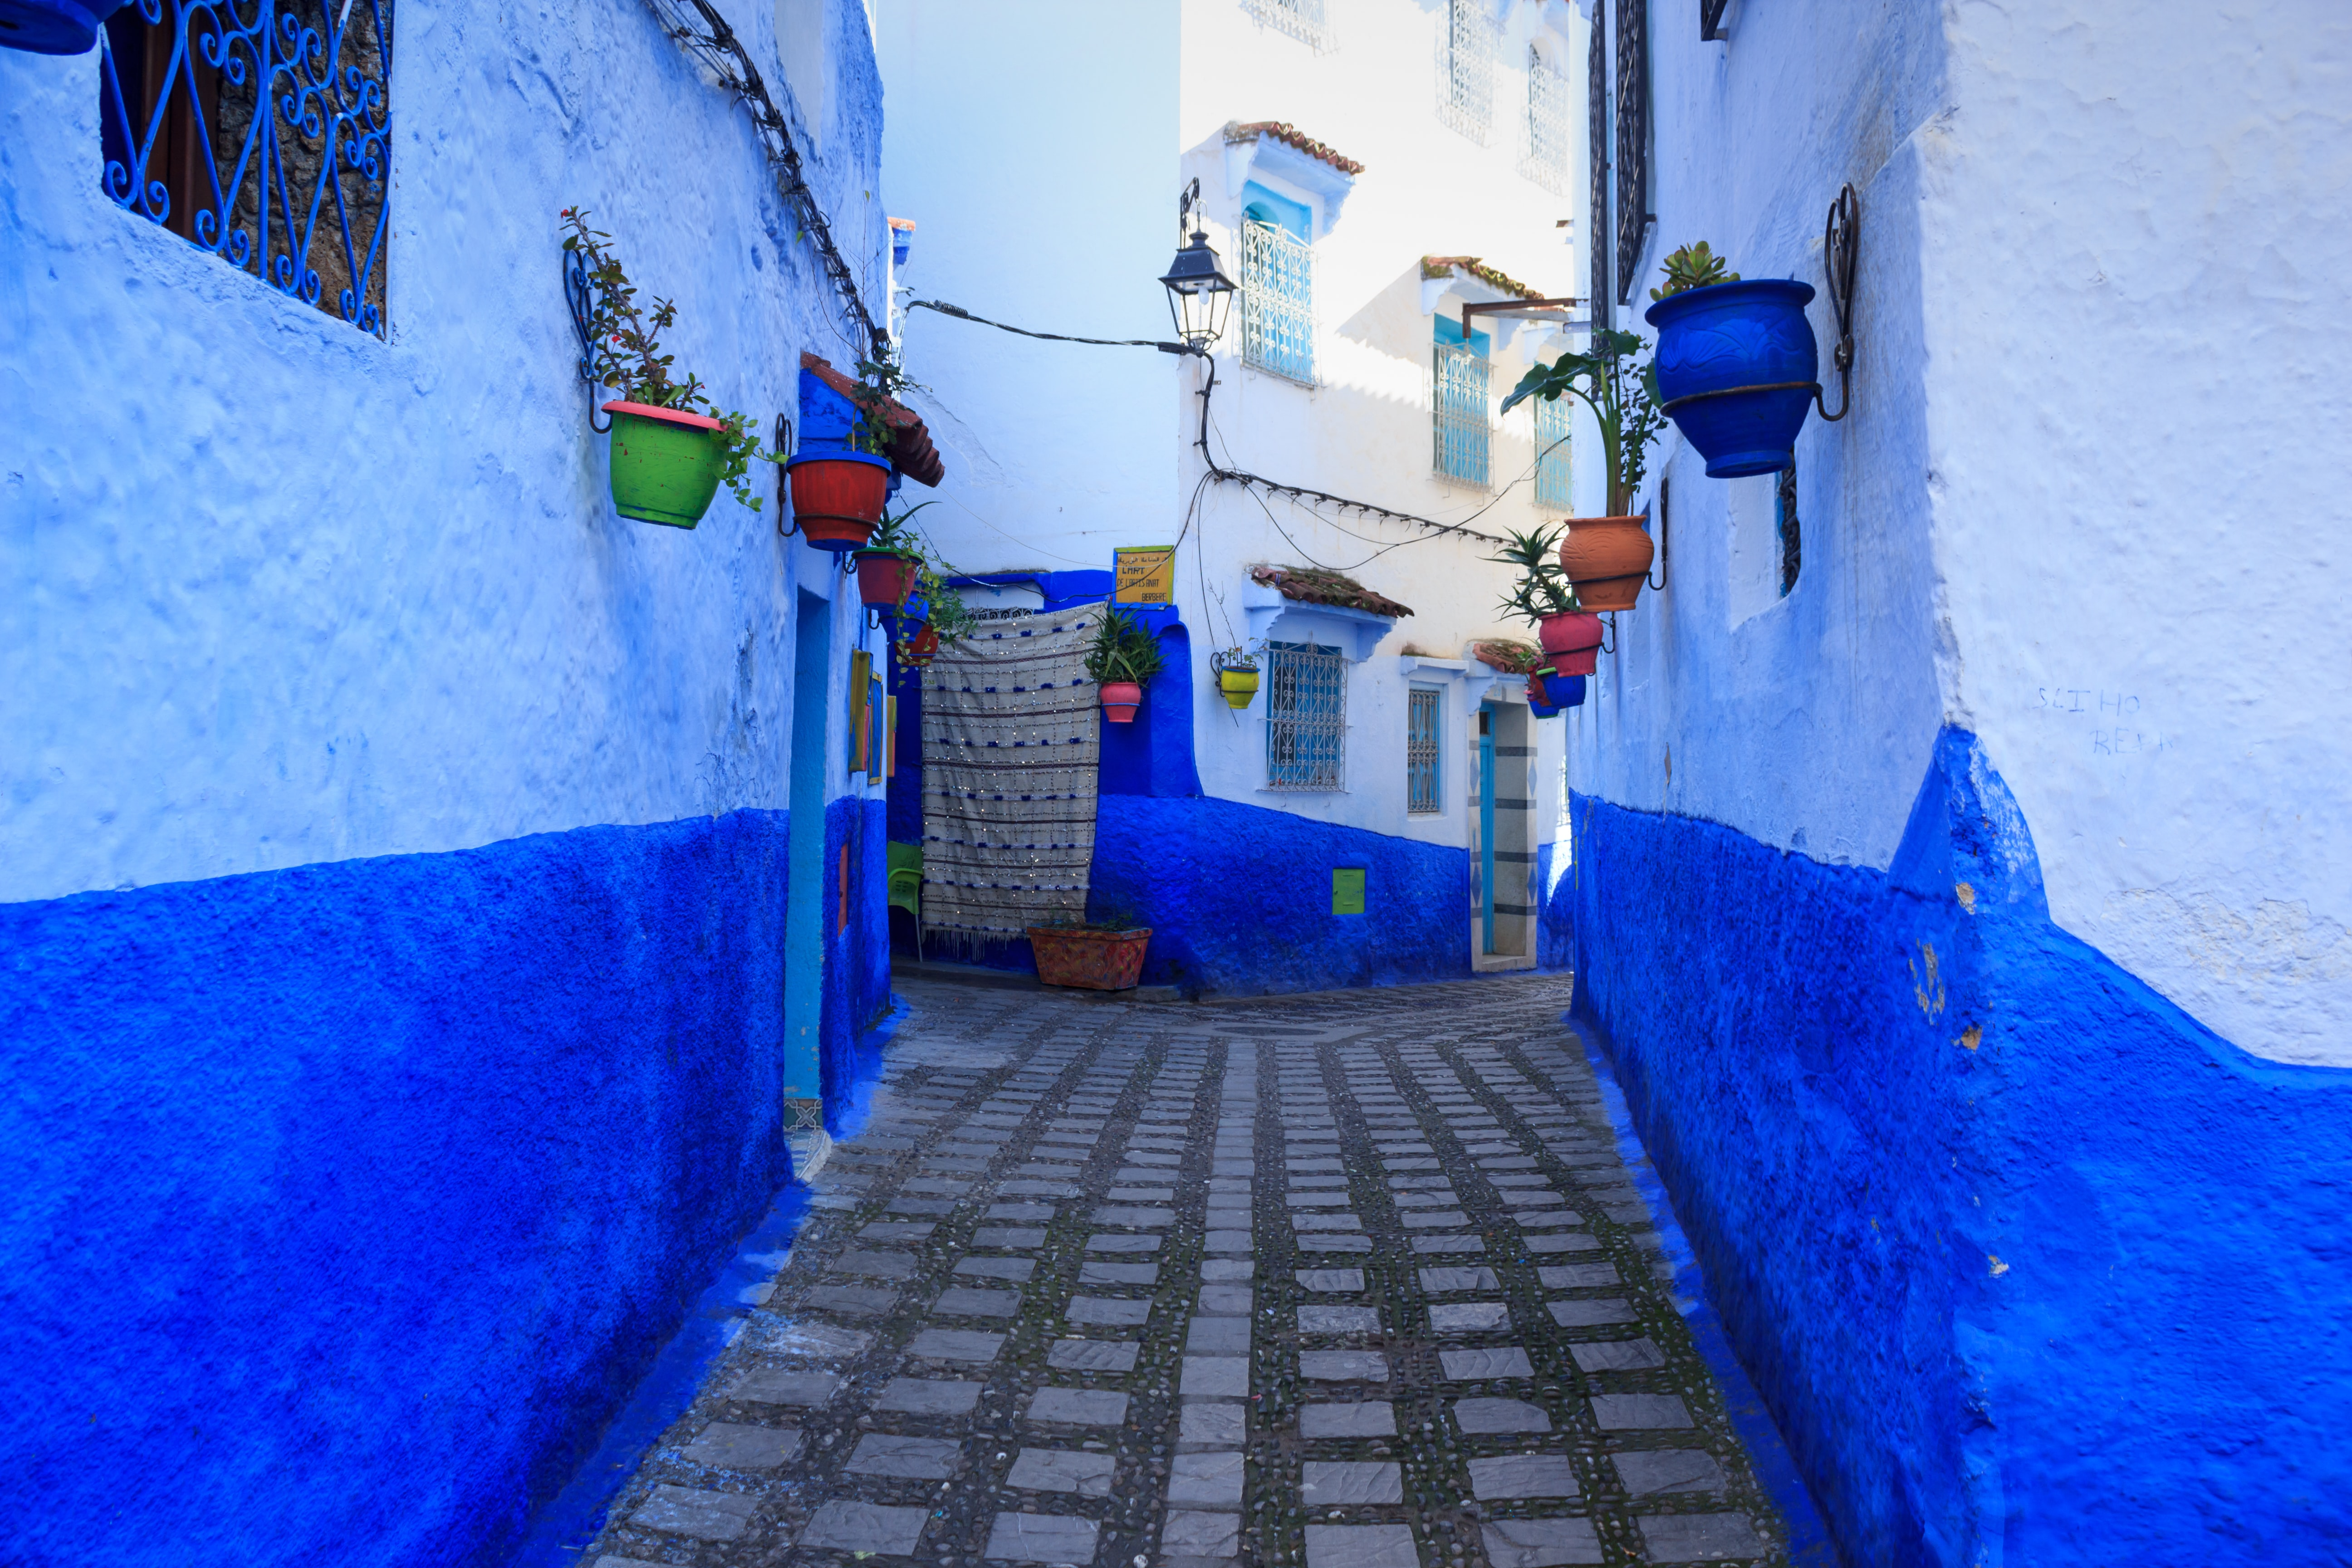 The blue city in Morocco.